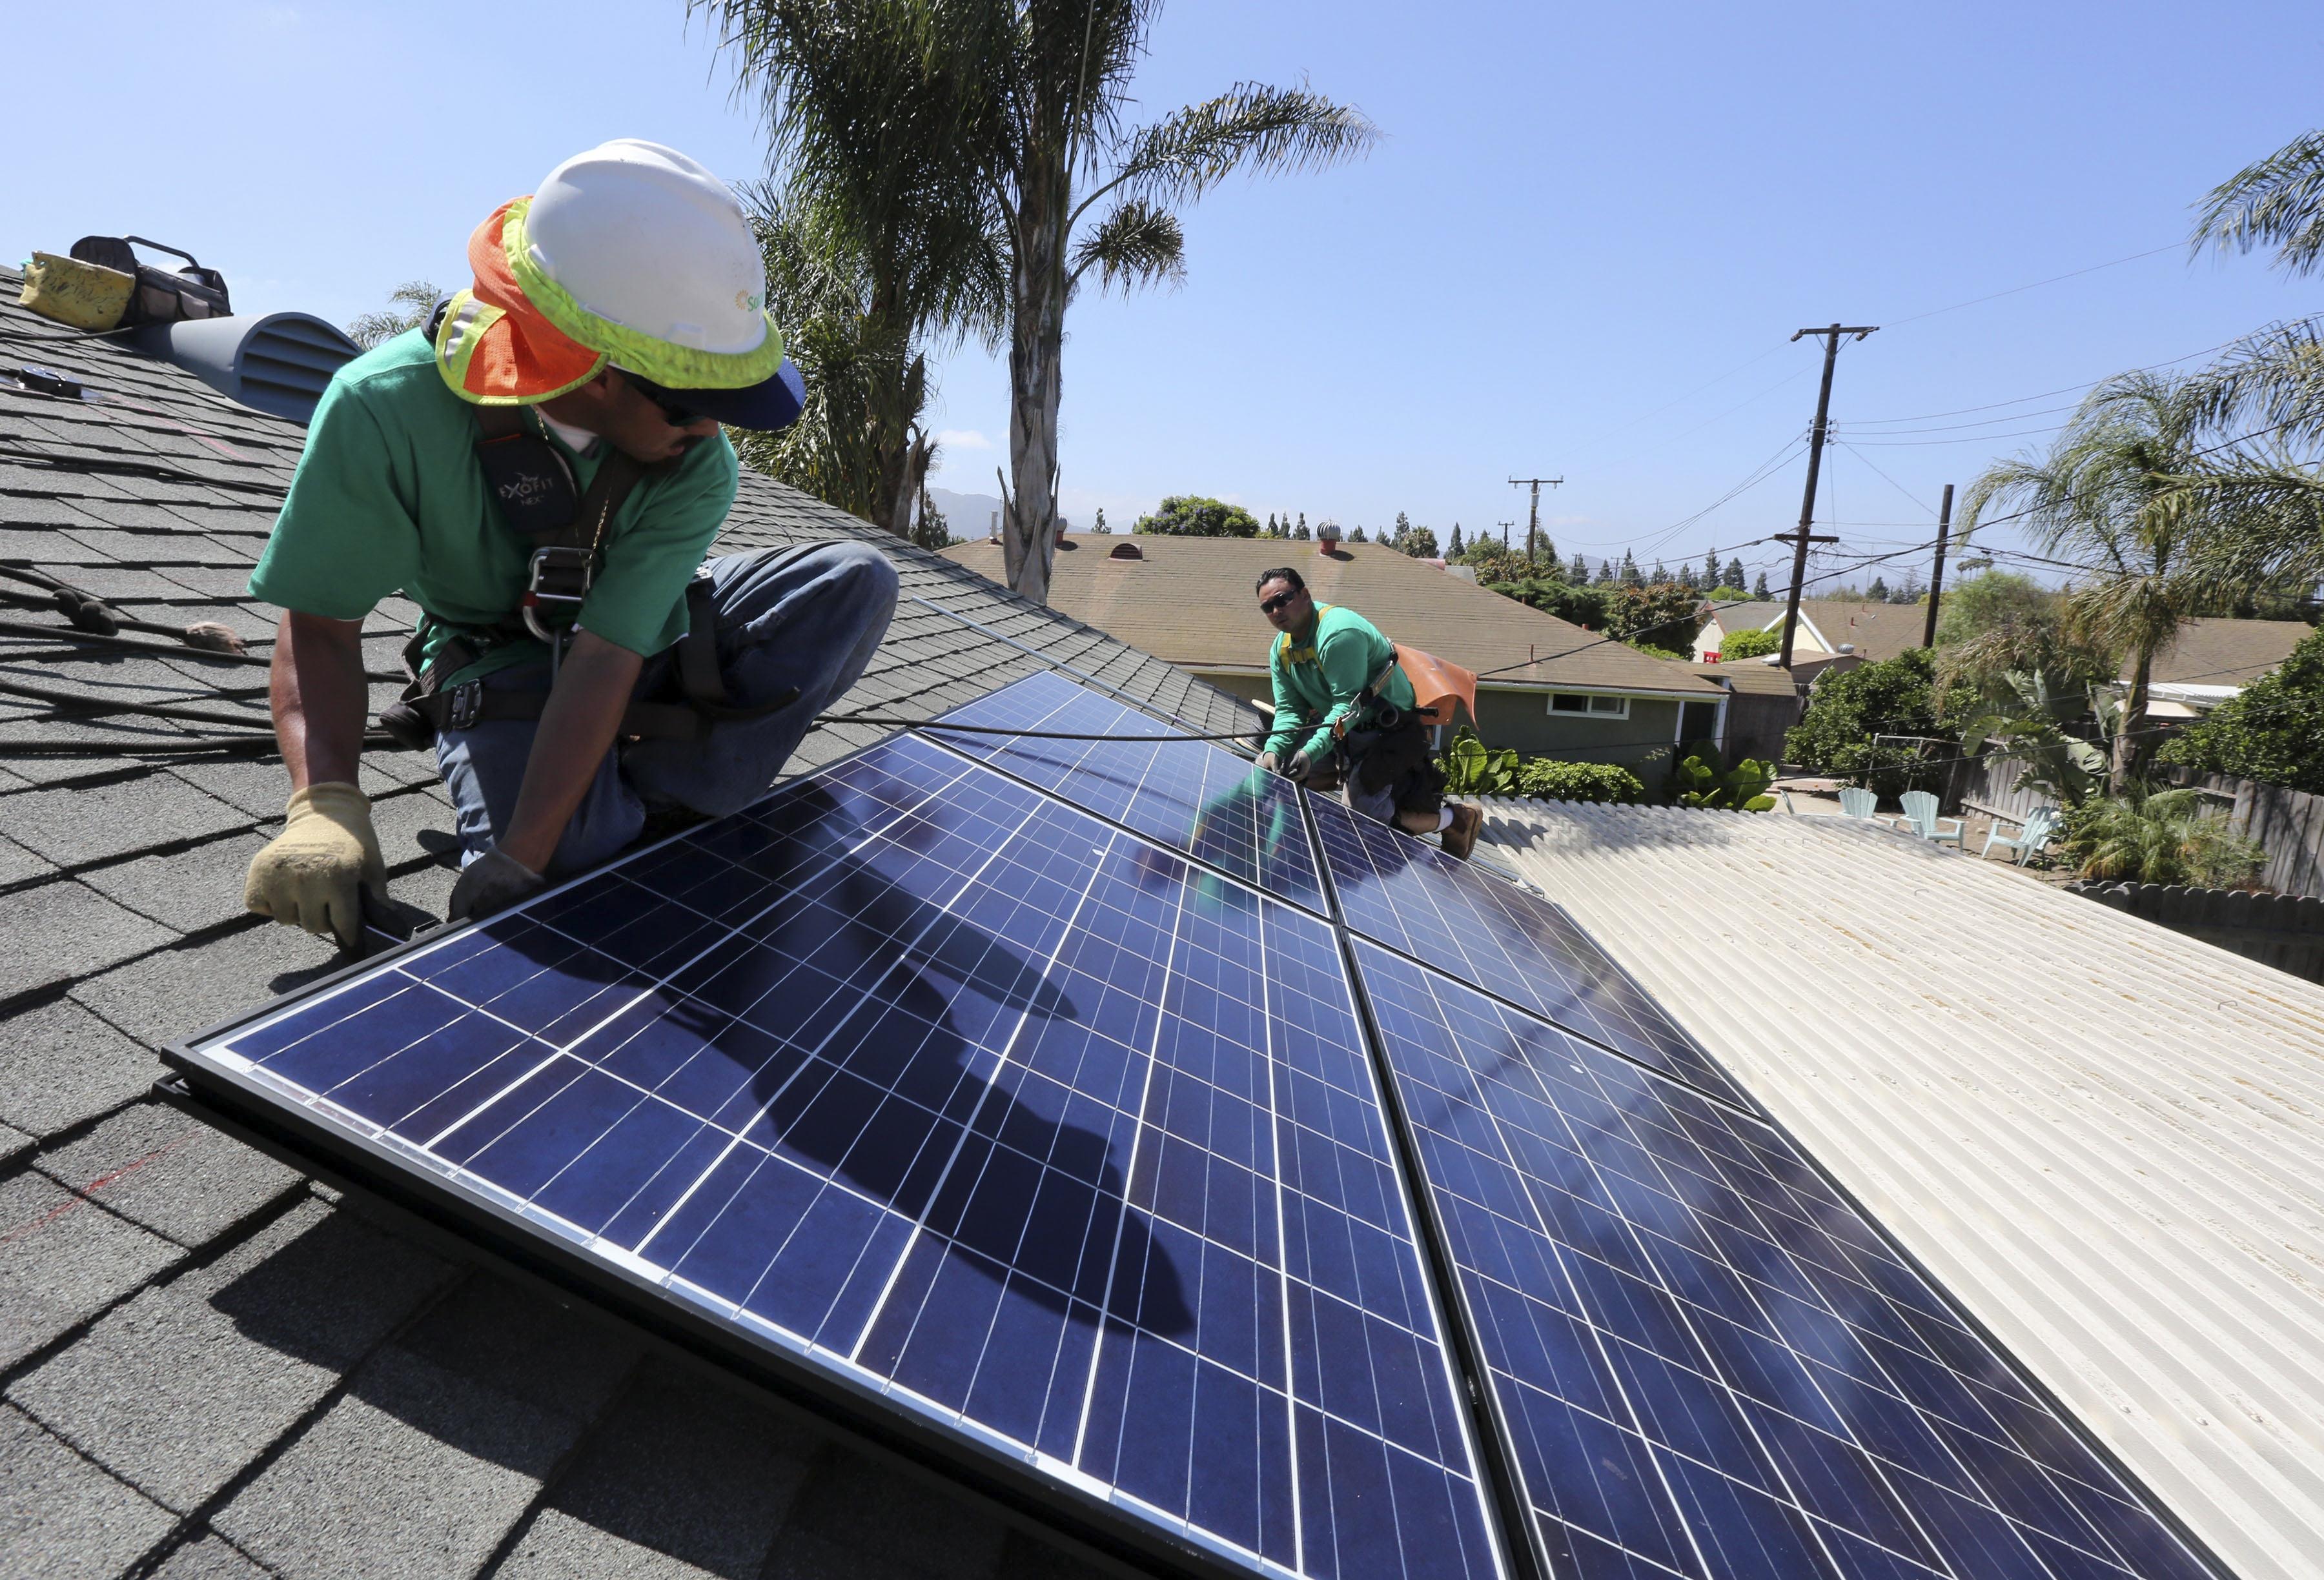 Workers from SolarCity install solar panels in Camarillo, Calif. The company had a $55.5 million loss in the second quarter.